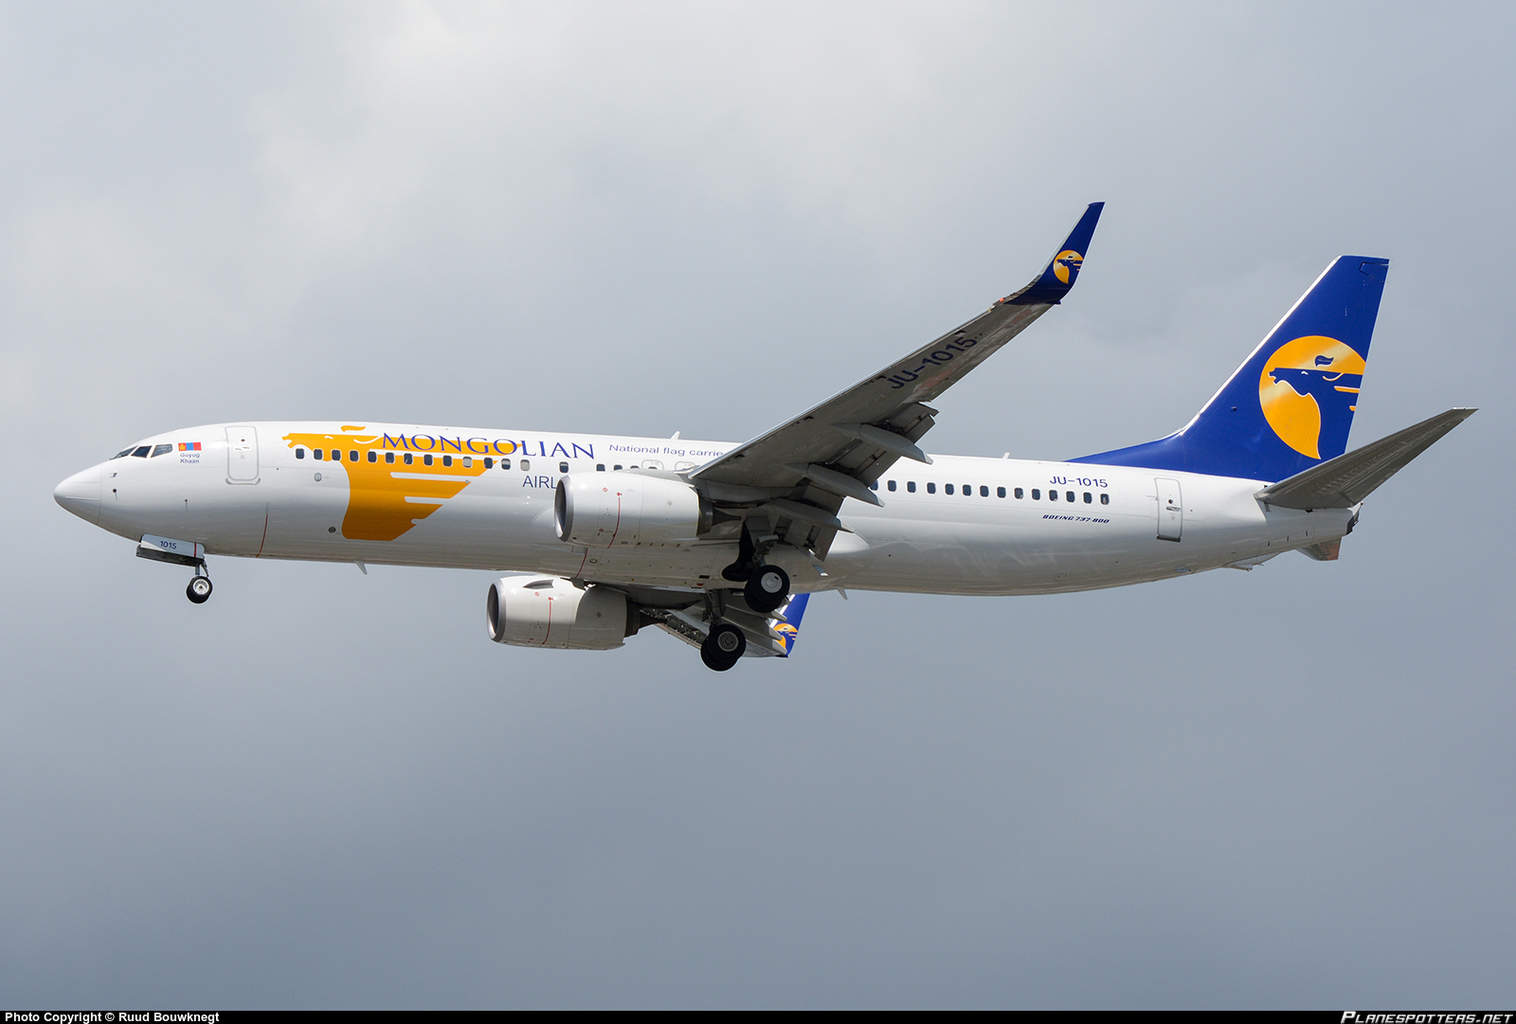 MIAT Mongolian Airlines modifies ULN-FRA route